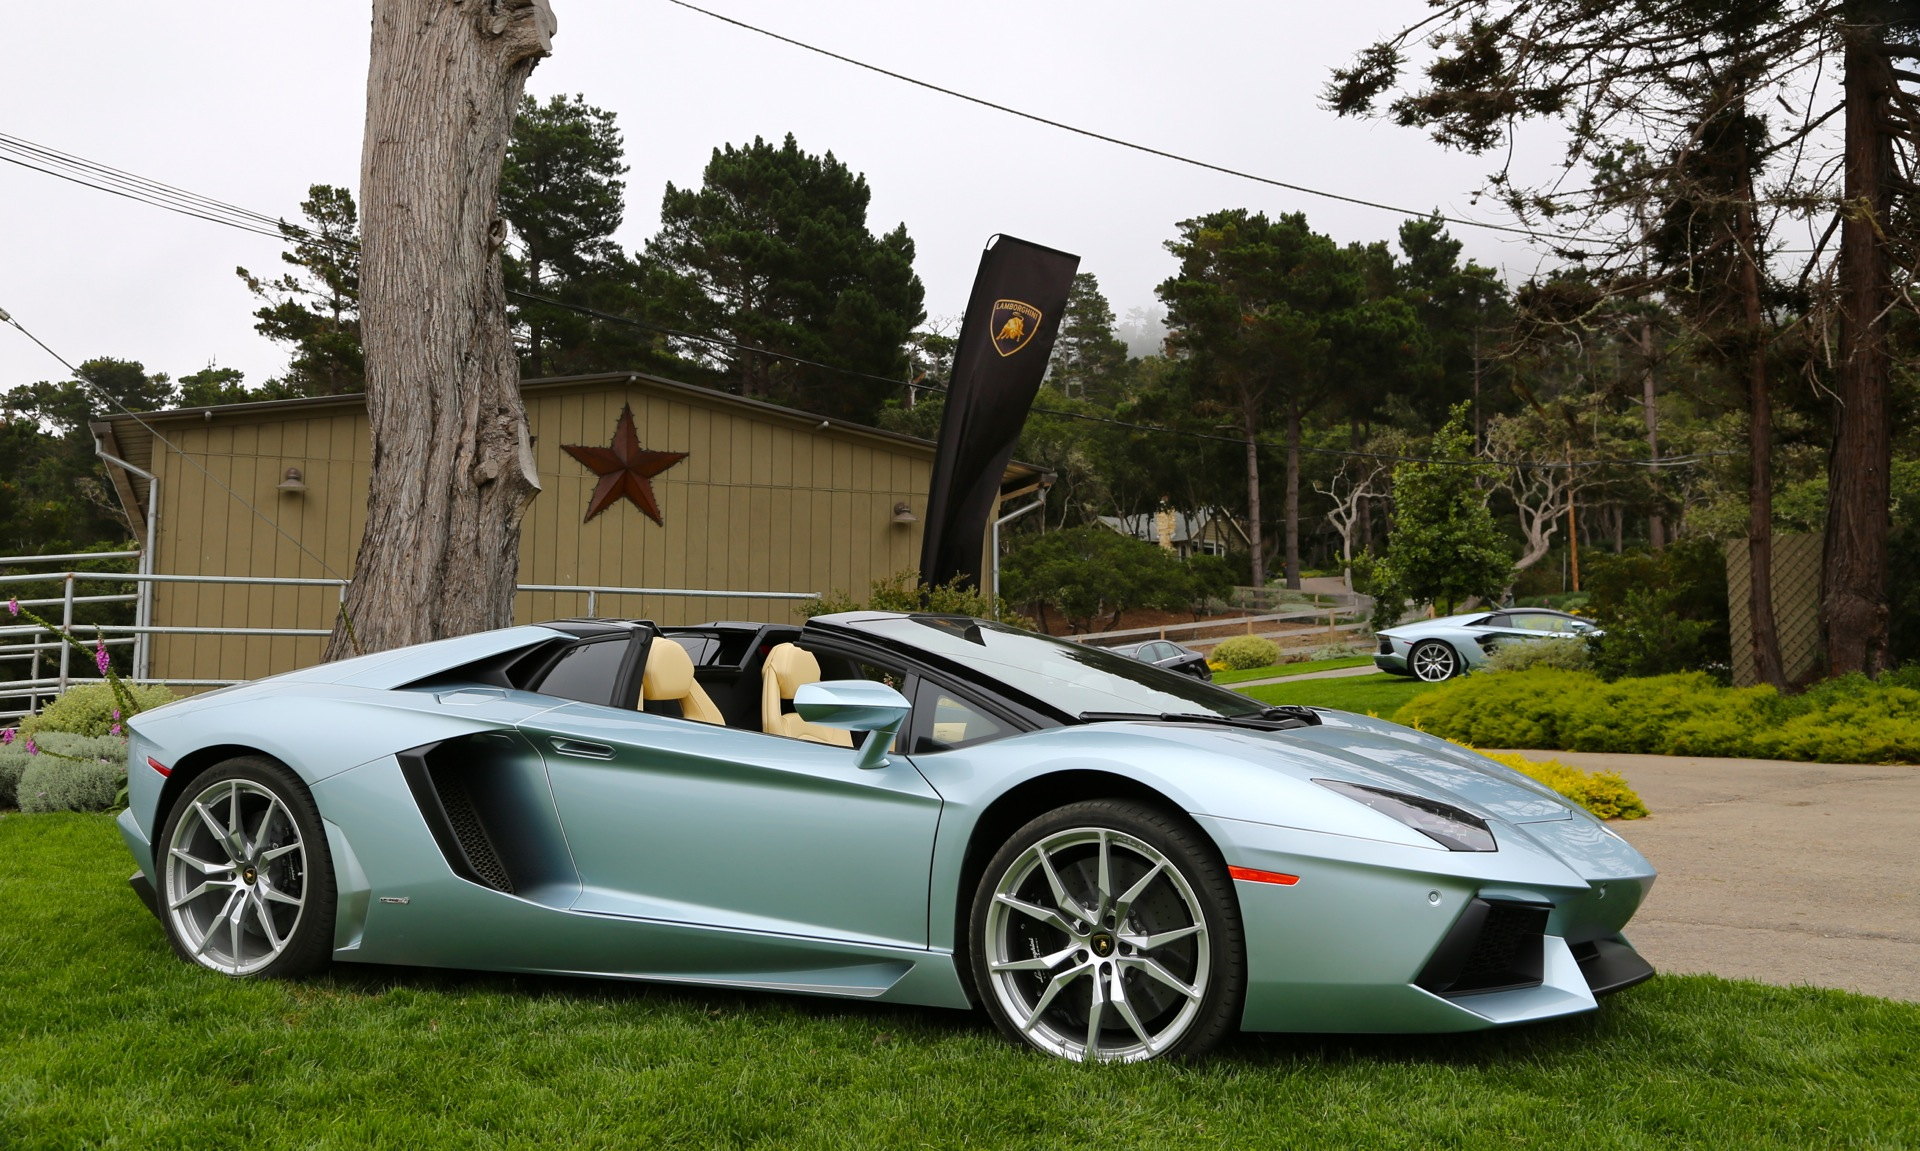 Delightful 2014 Lamborghini Aventador Review, Ratings, Specs, Prices, And Photos   The  Car Connection